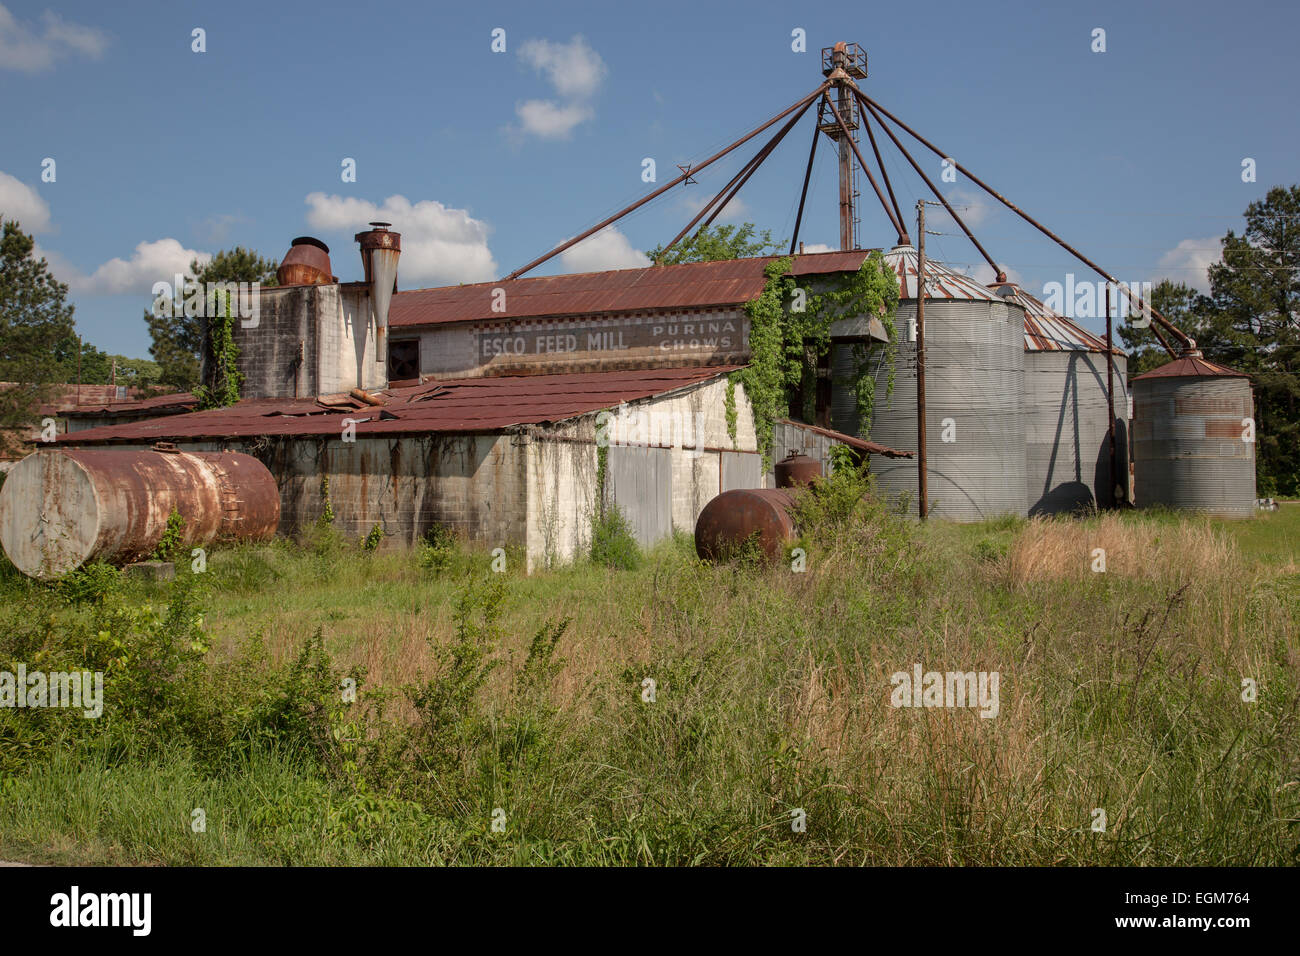 Abandoned mill ruins where the television series The Walking Dead is filmed May 7, 2013 in Haralson, Georgia. - Stock Image